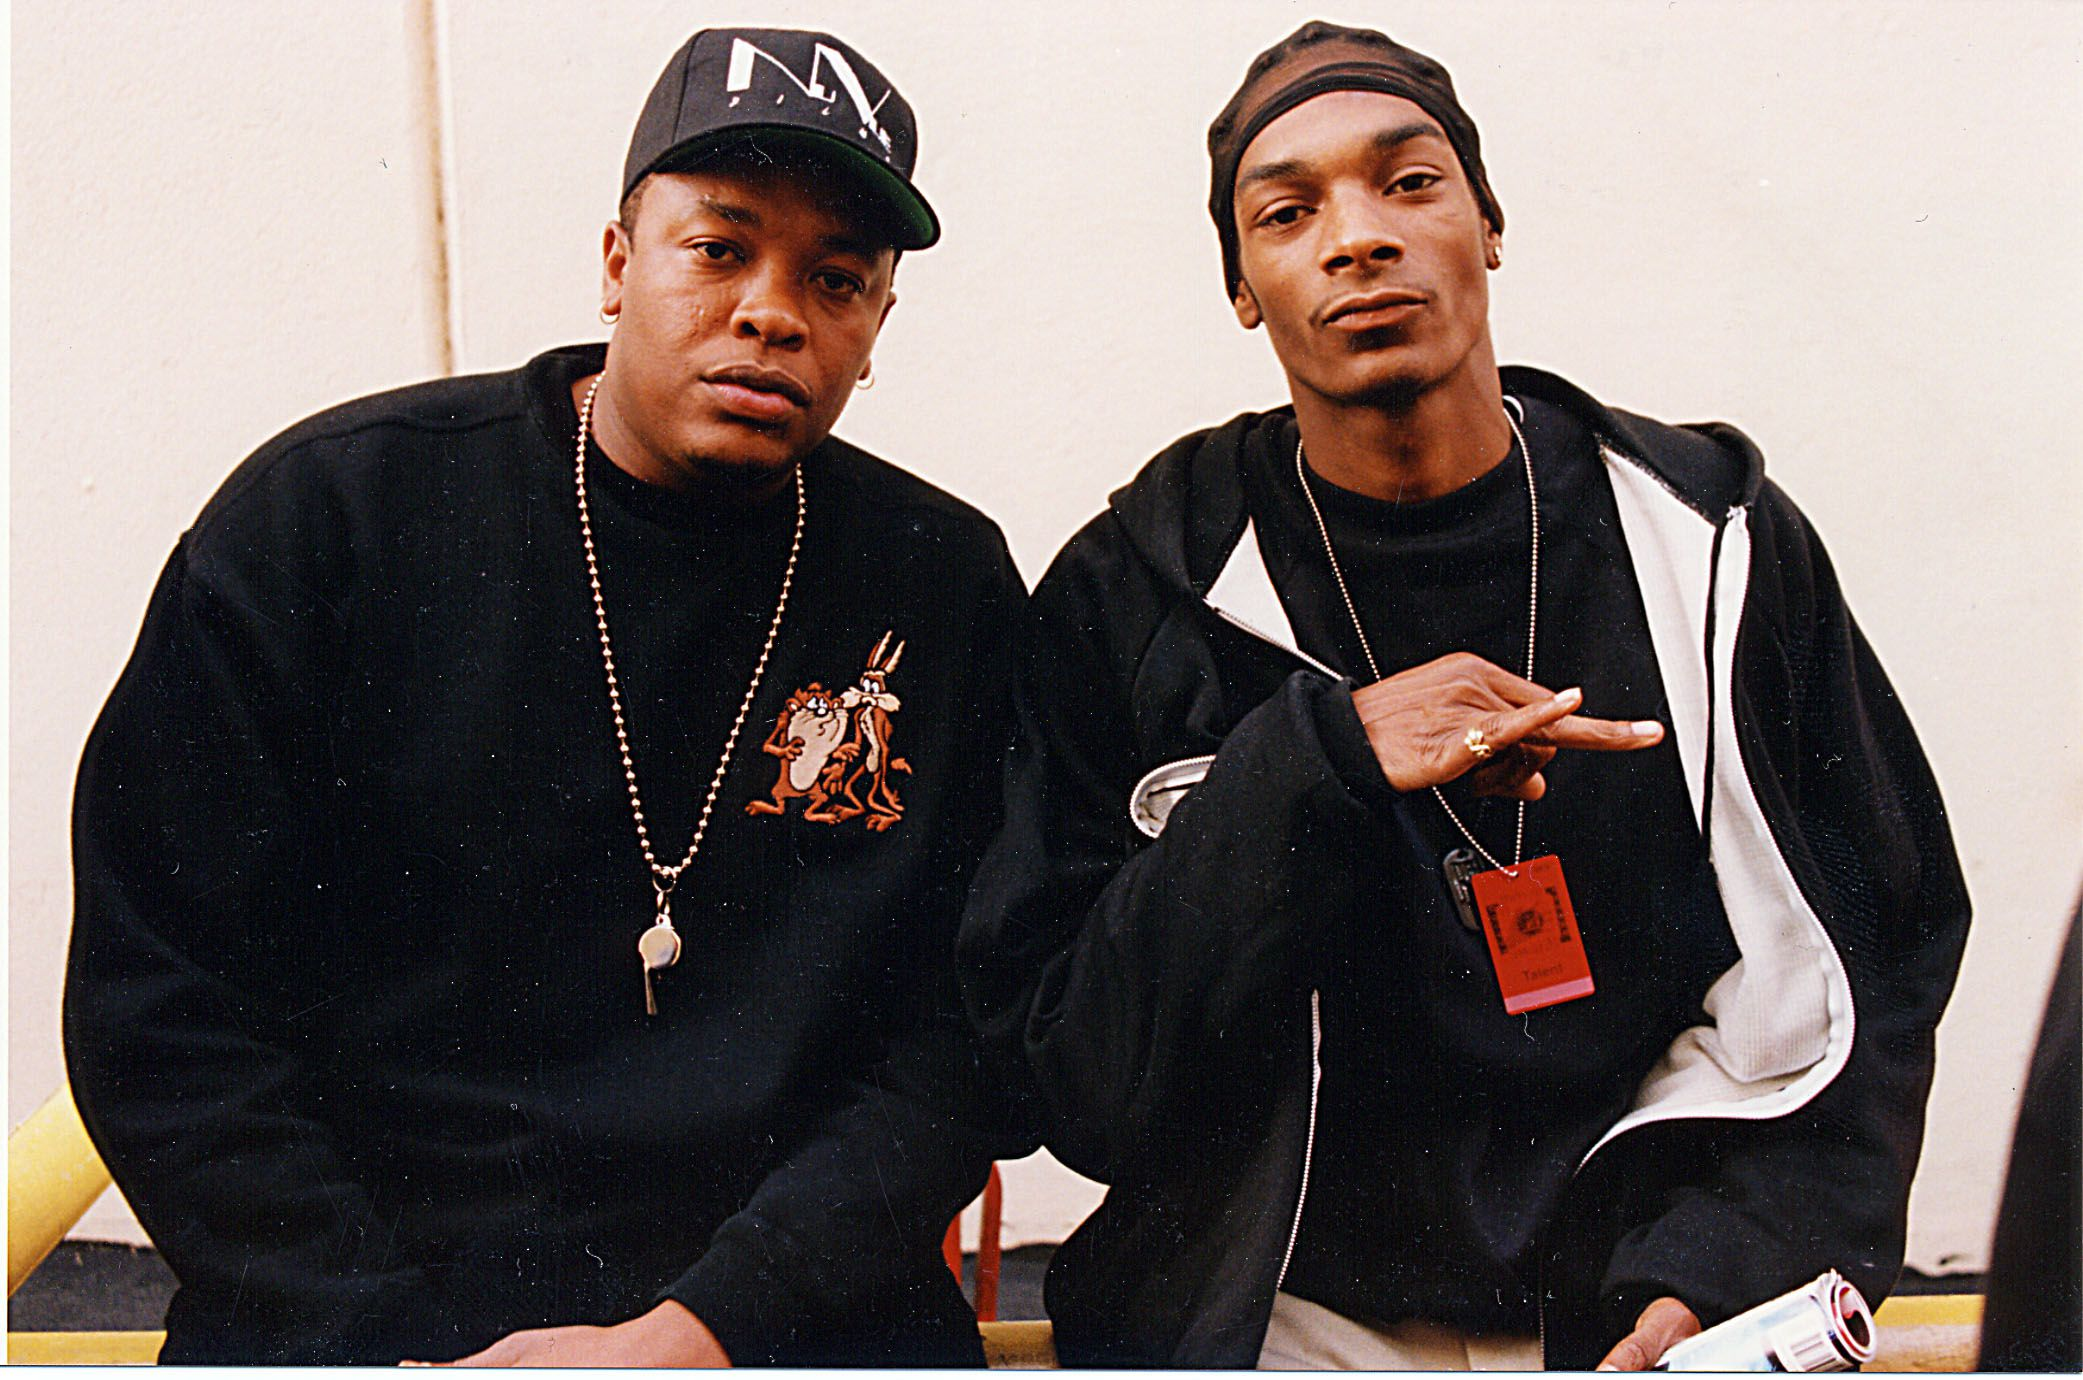 Dr. Dre con Snoop Dogg